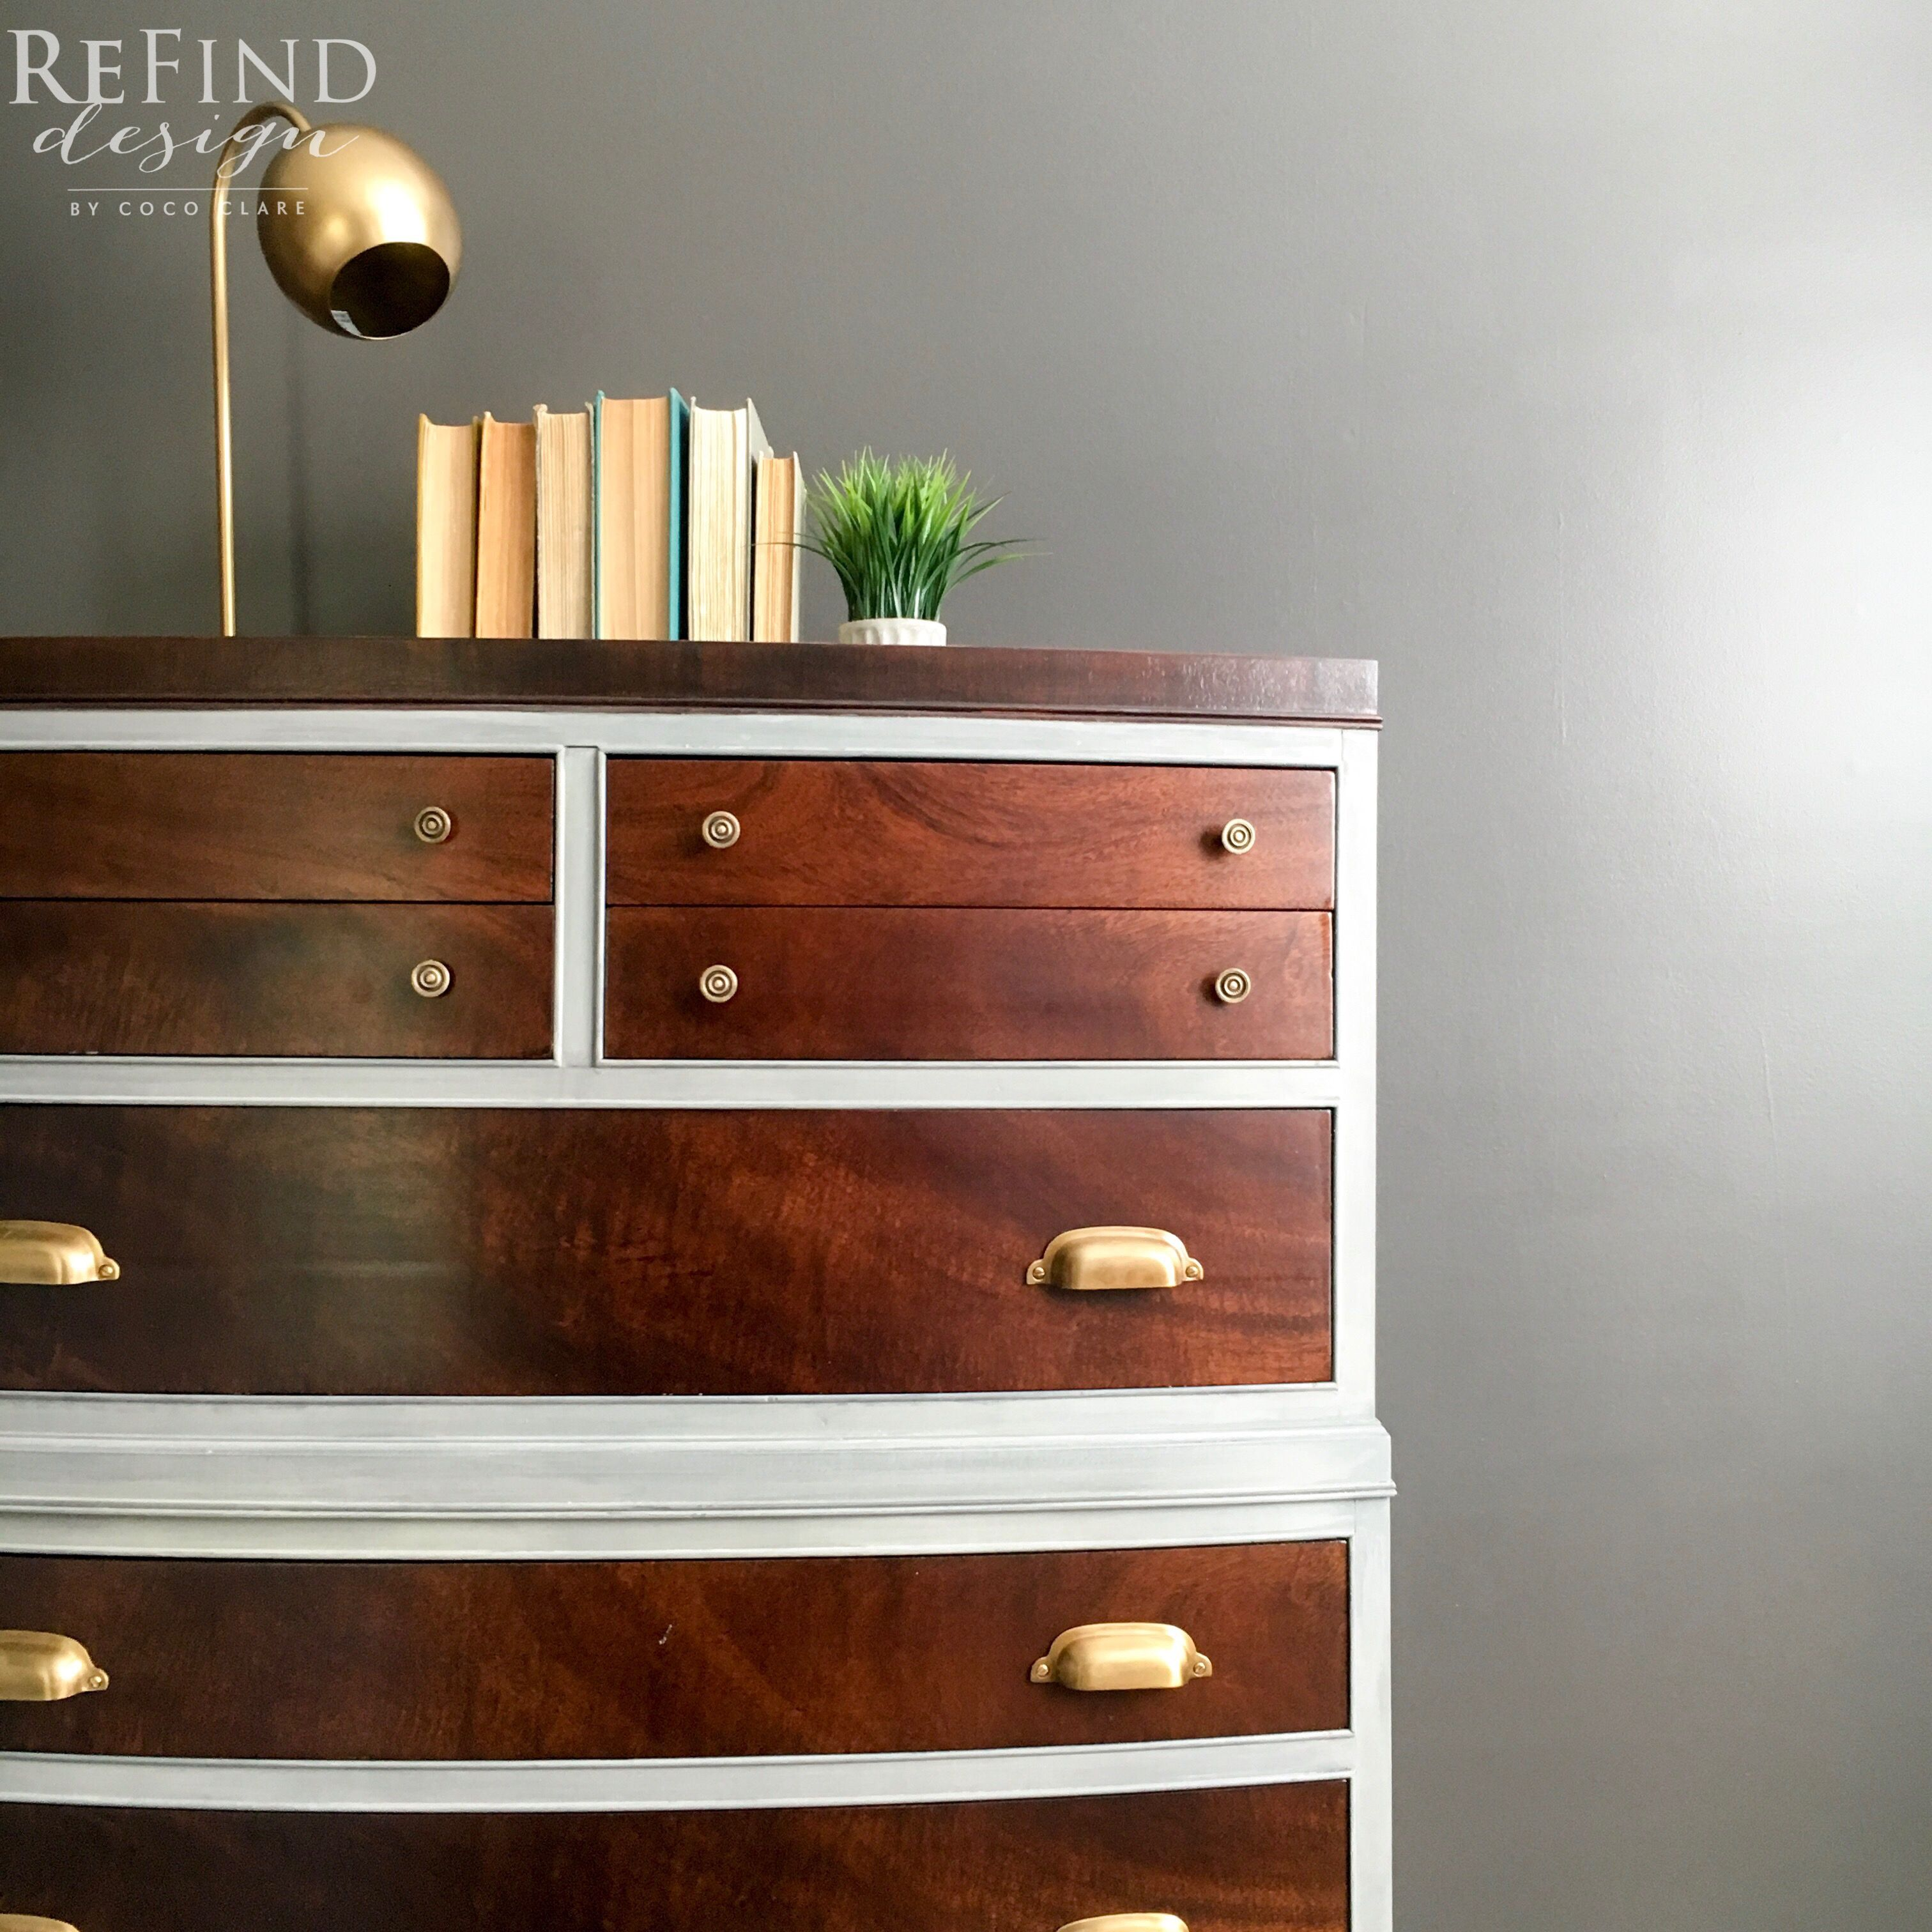 Vintage dresser redesigned using General Finishes Dye Stain and Miss